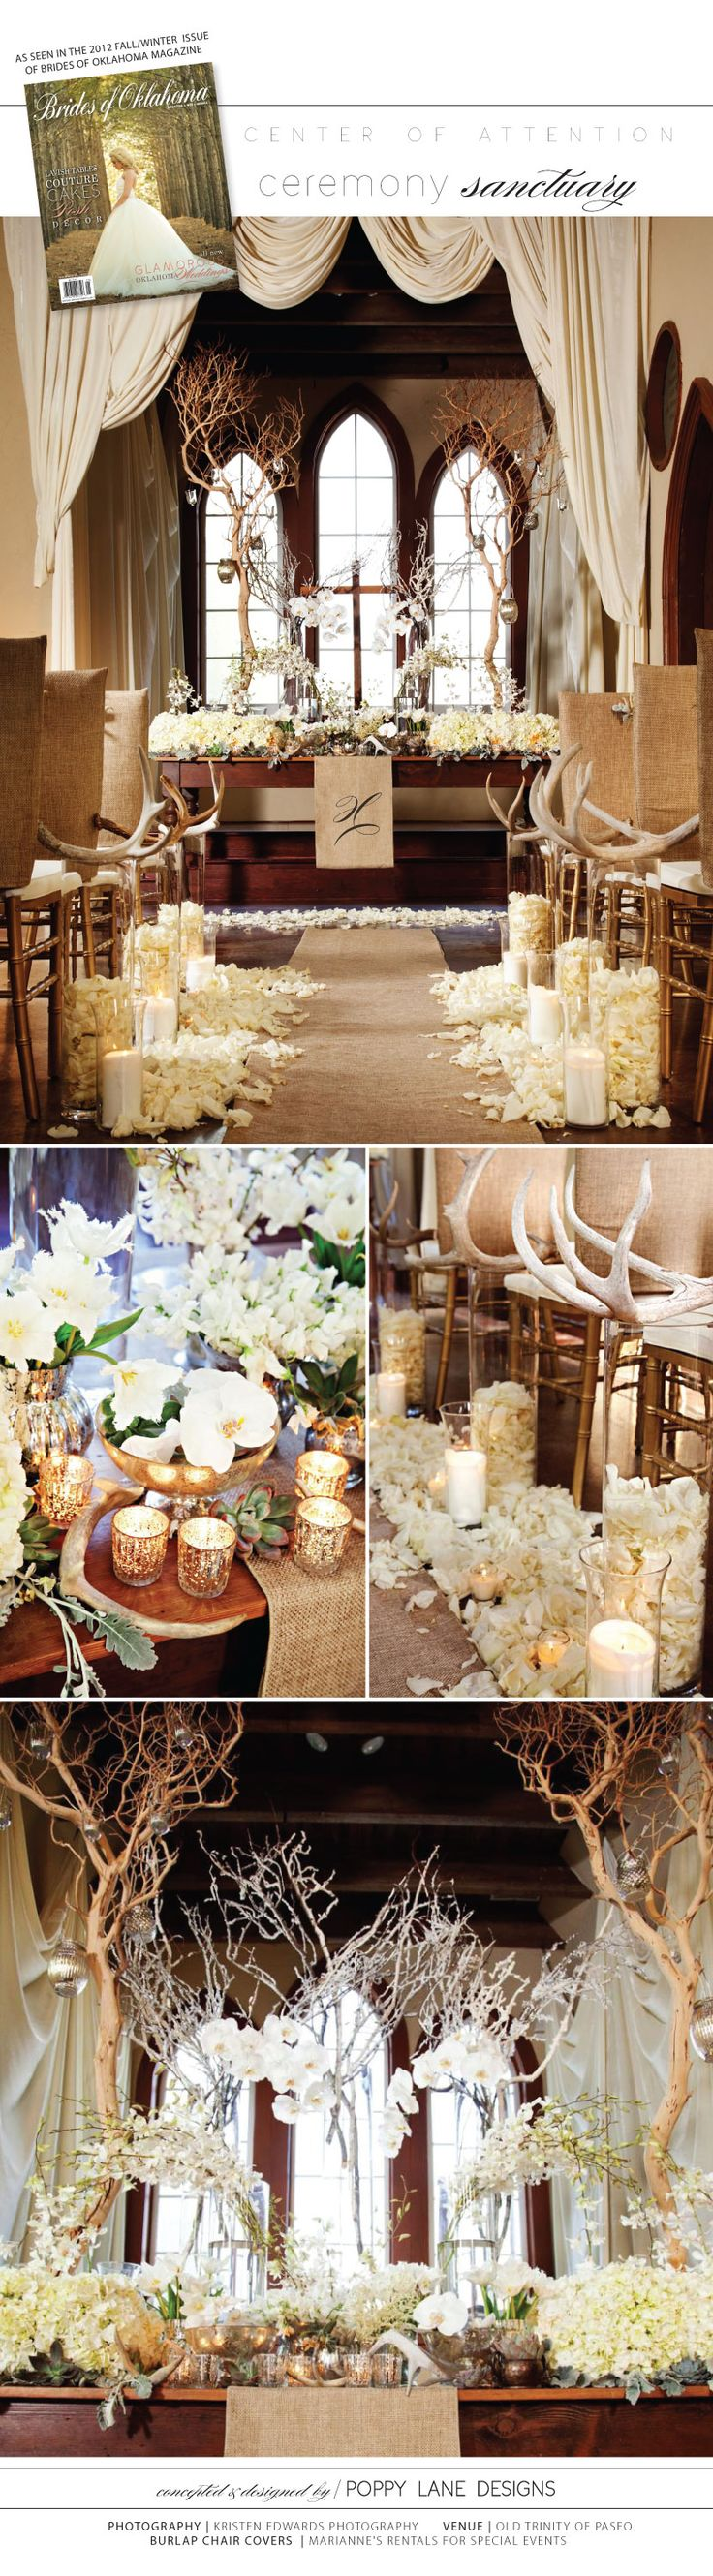 Wintery white alter/aisle display from Poppy Lane Designs at the Old Trinity of Paseo.  Photography by Kristen Edwards Photography. That's beautiful!